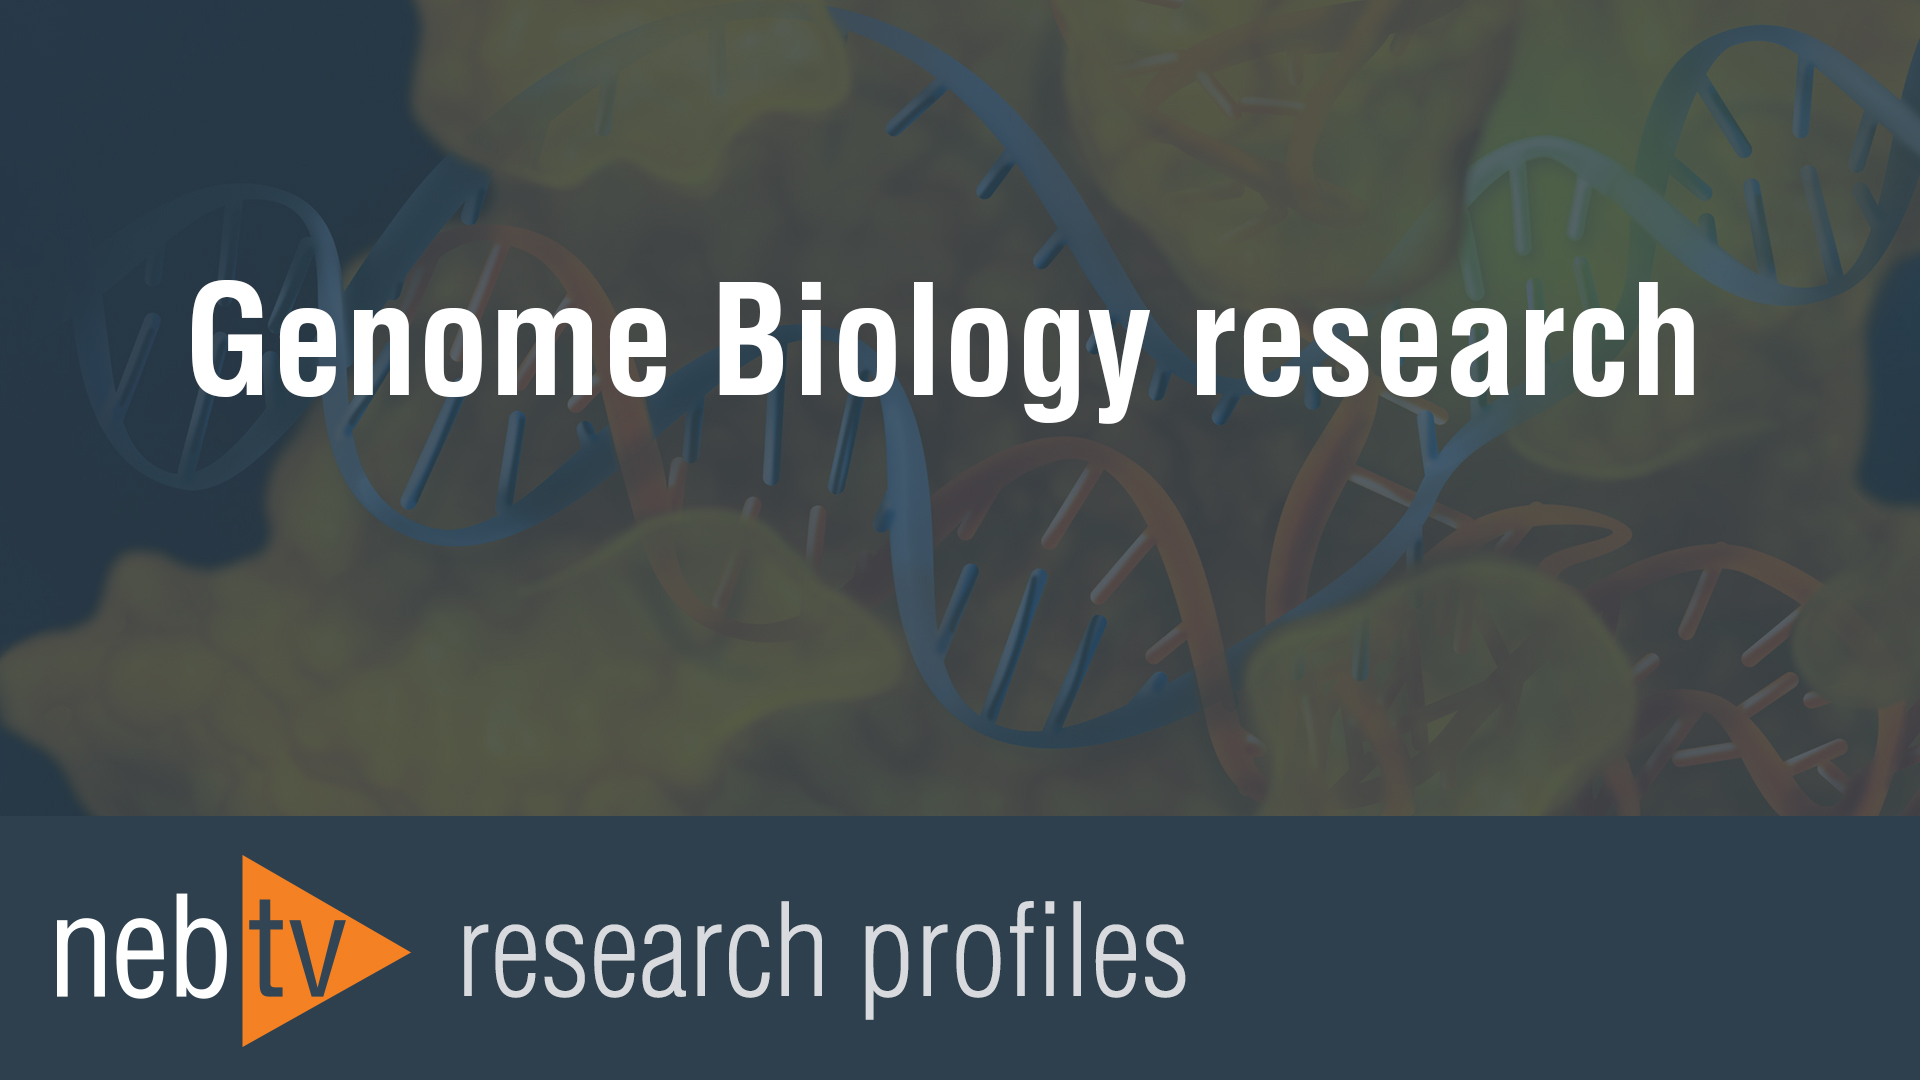 NEBTV_GenomeBiologyresearch